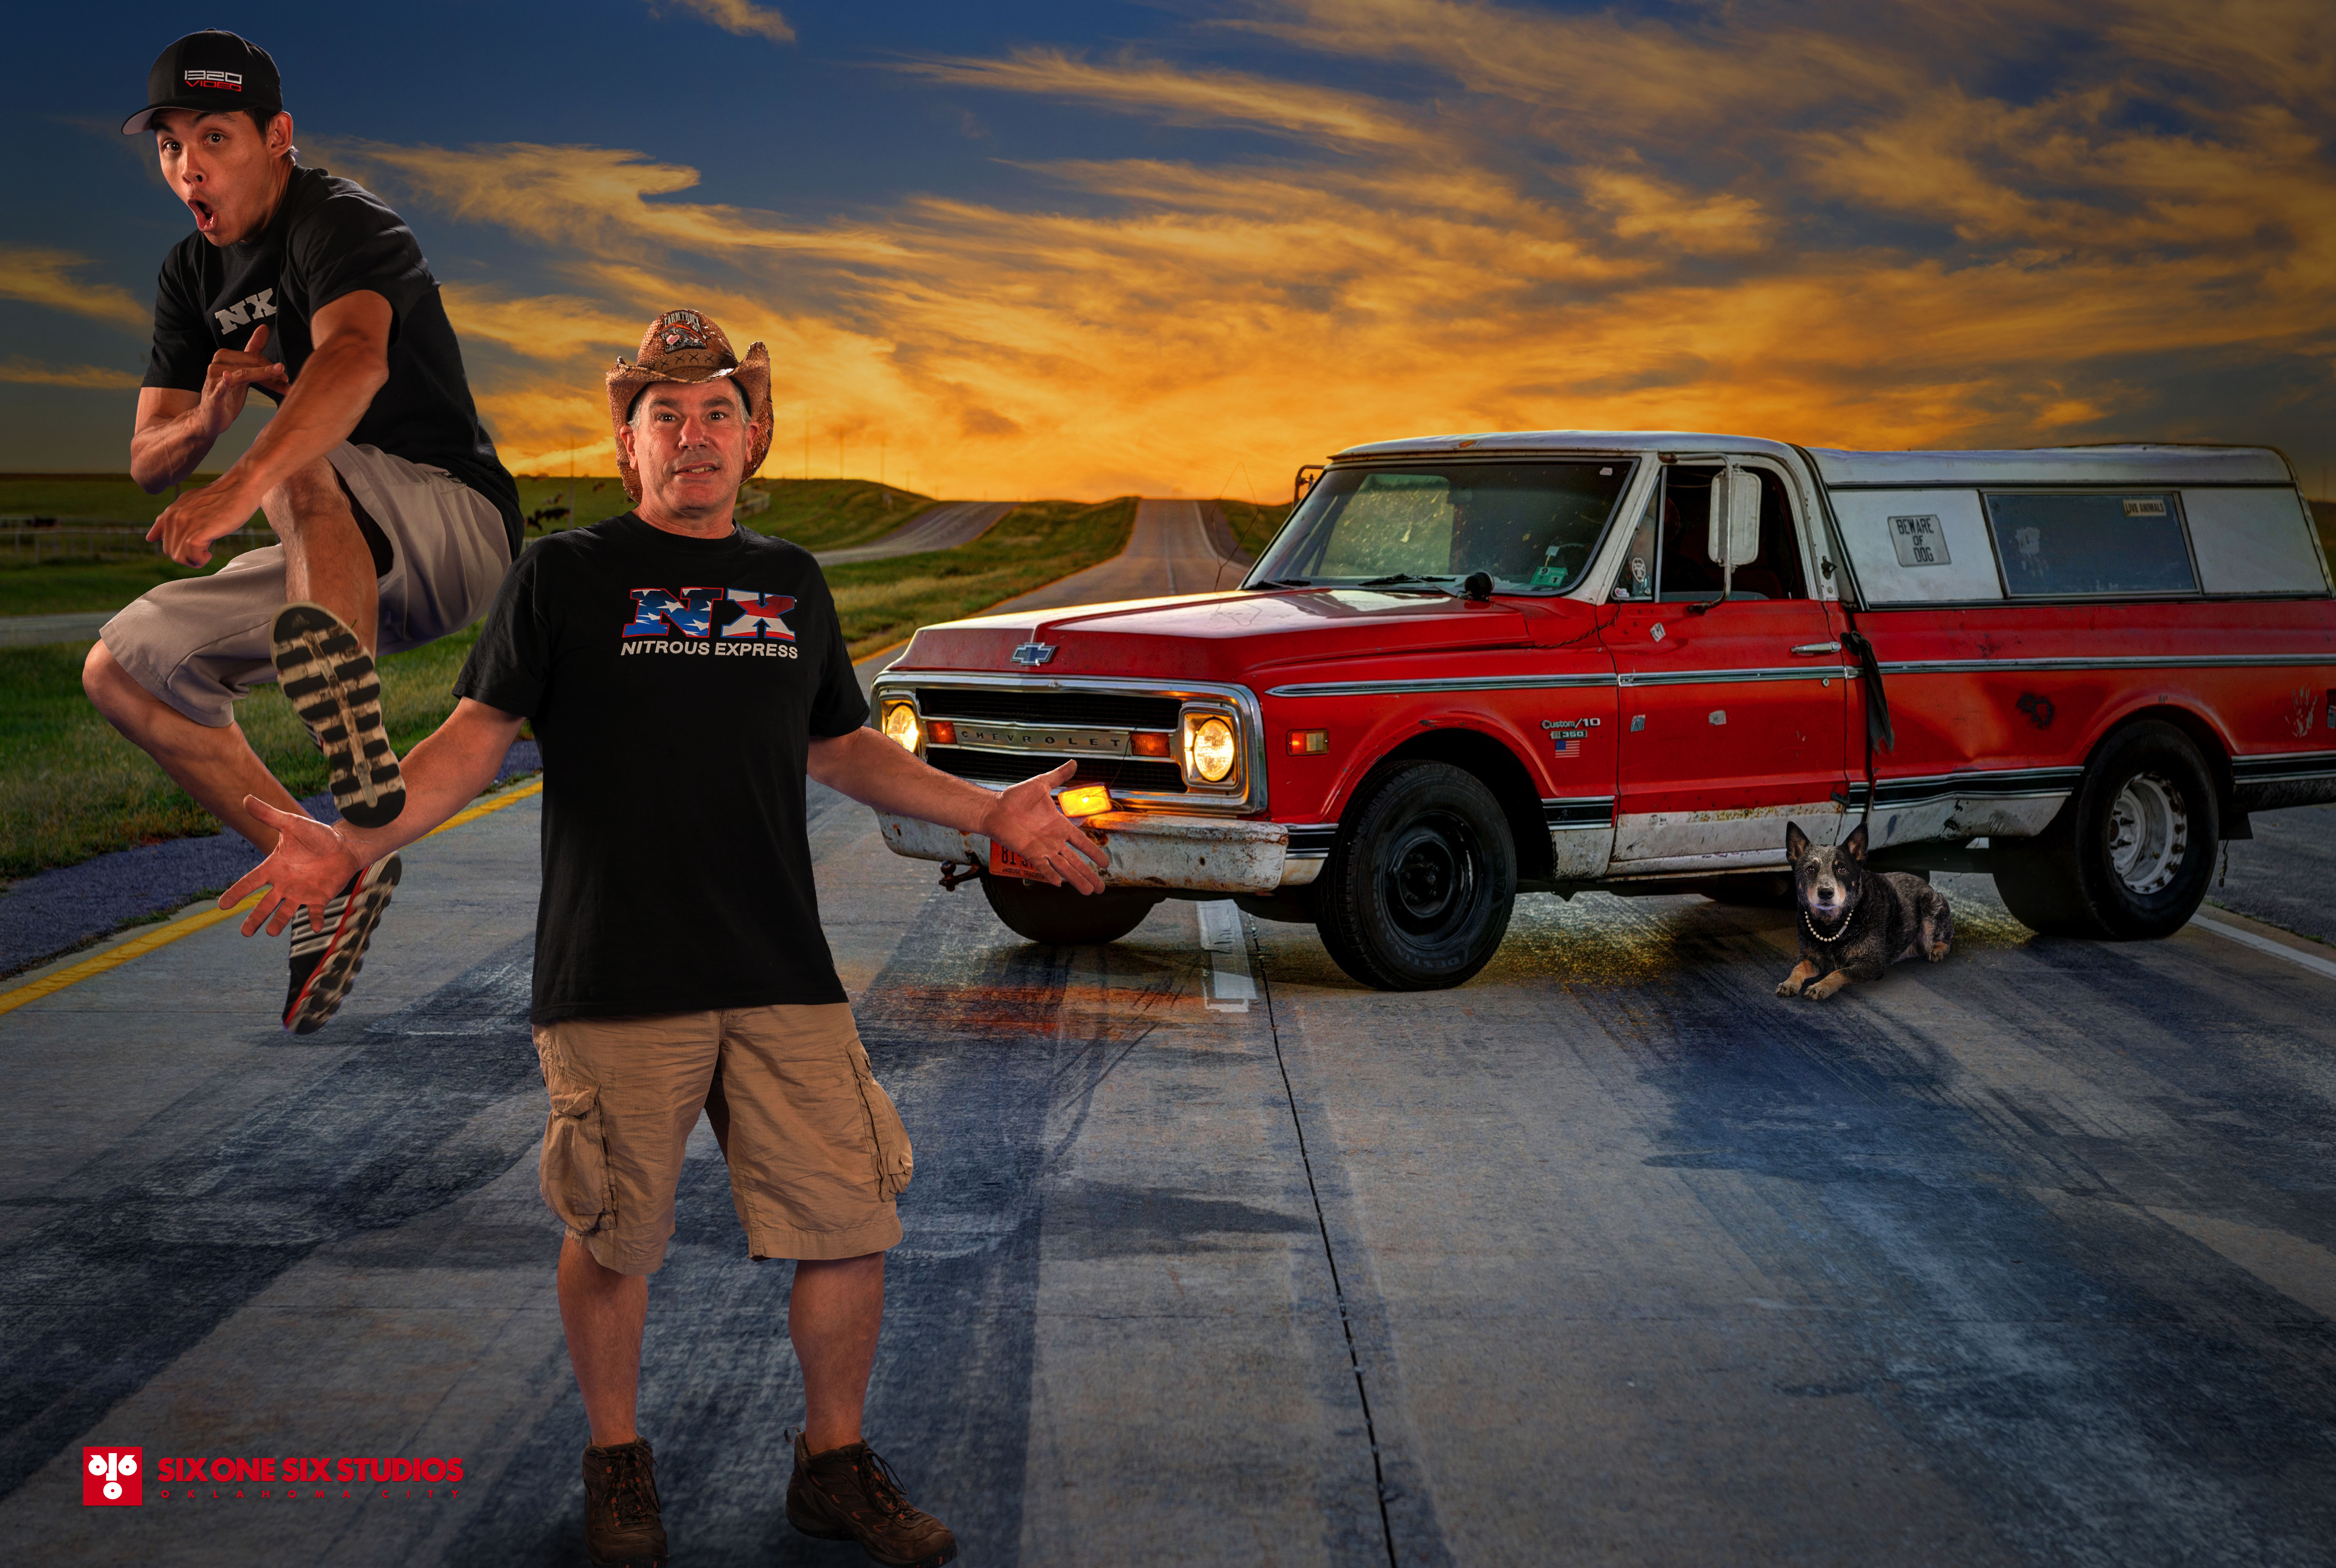 Street outlaws farm truck and asian dating 5